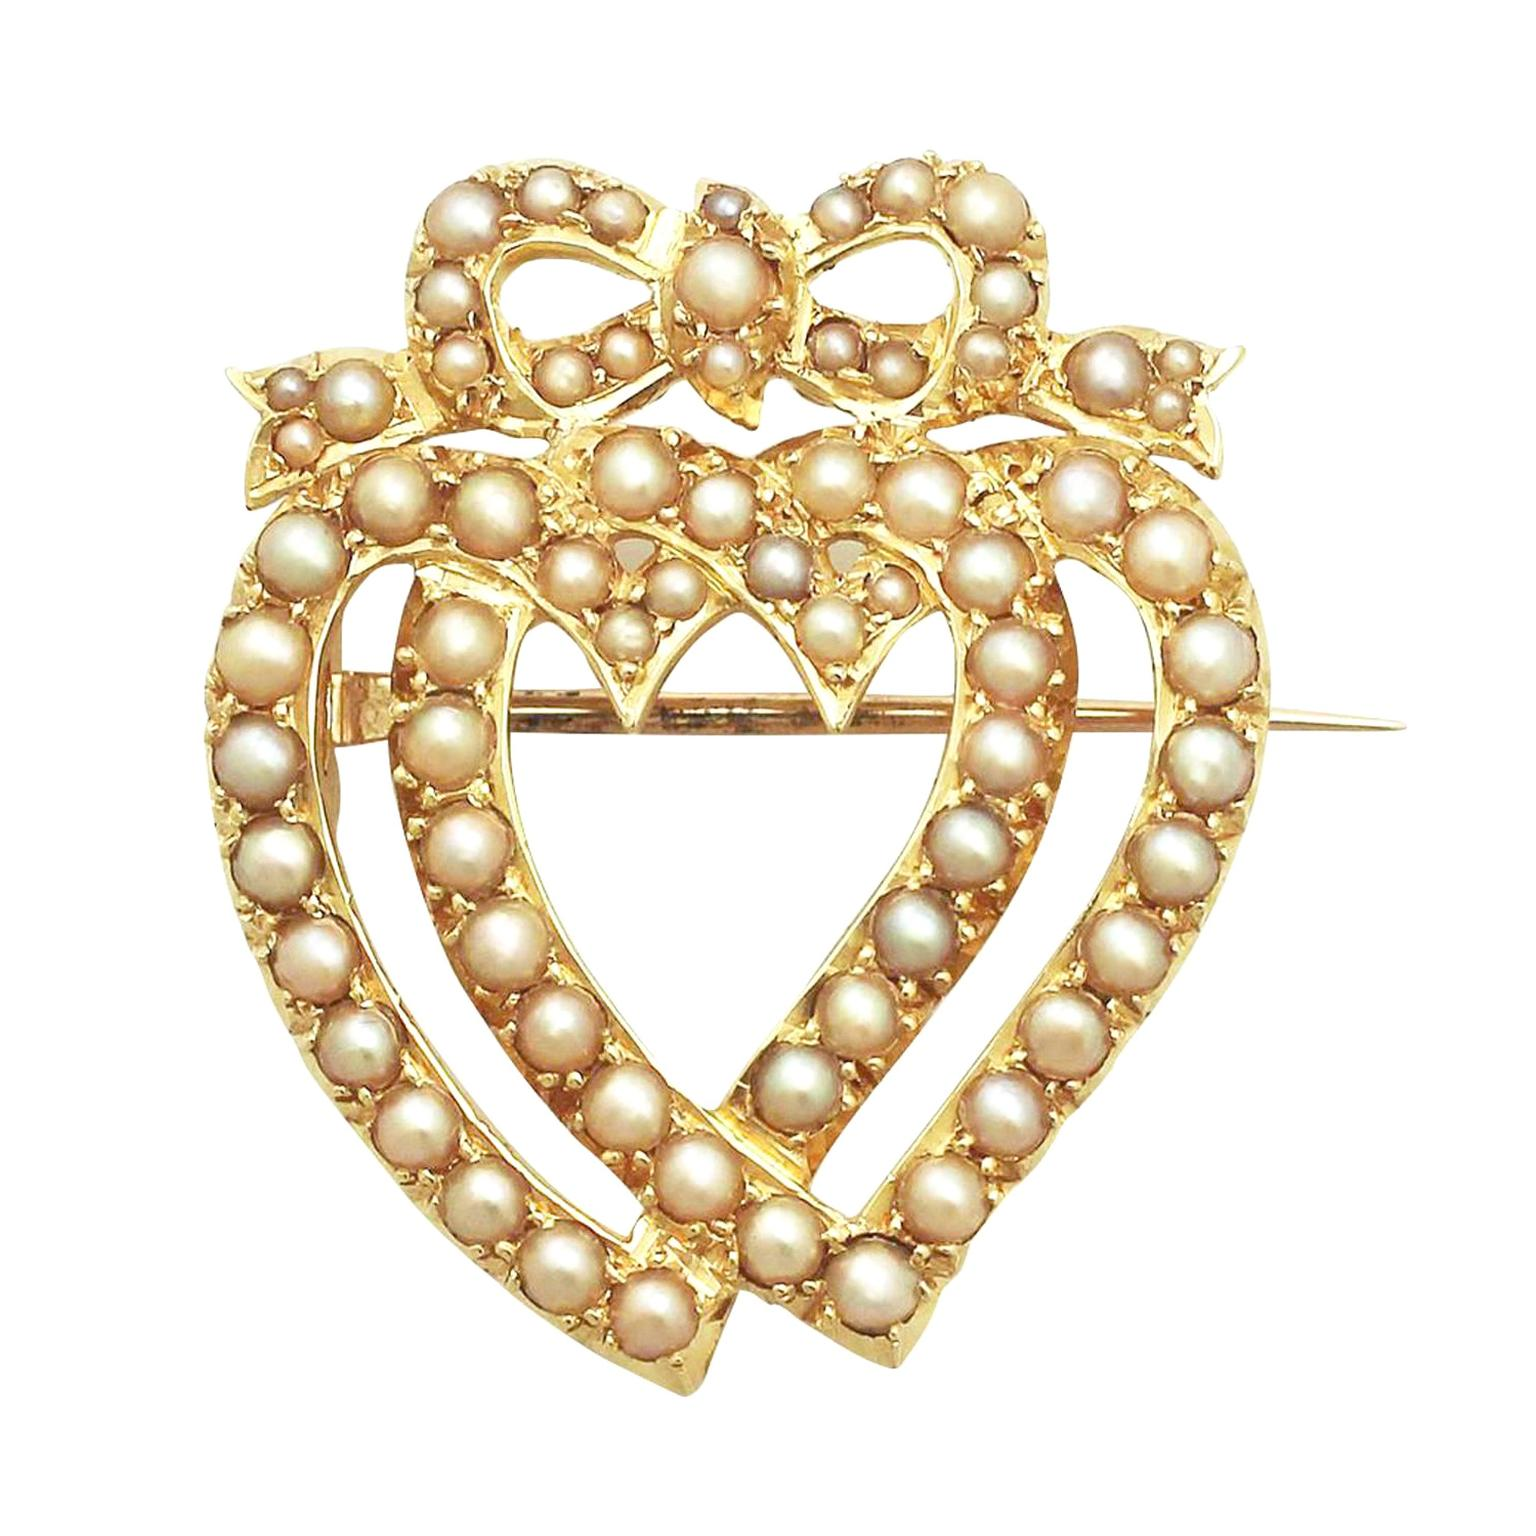 ACS Antiques & Collectibles pearl and yellow gold heart entwined brooch